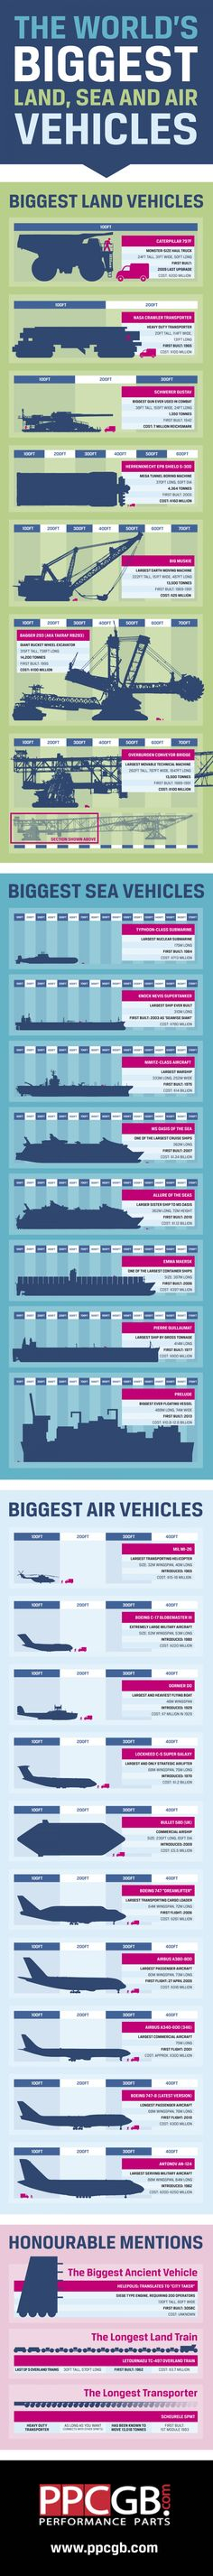 The Largest Land, Sea and Air Vehicles in the World Infographic